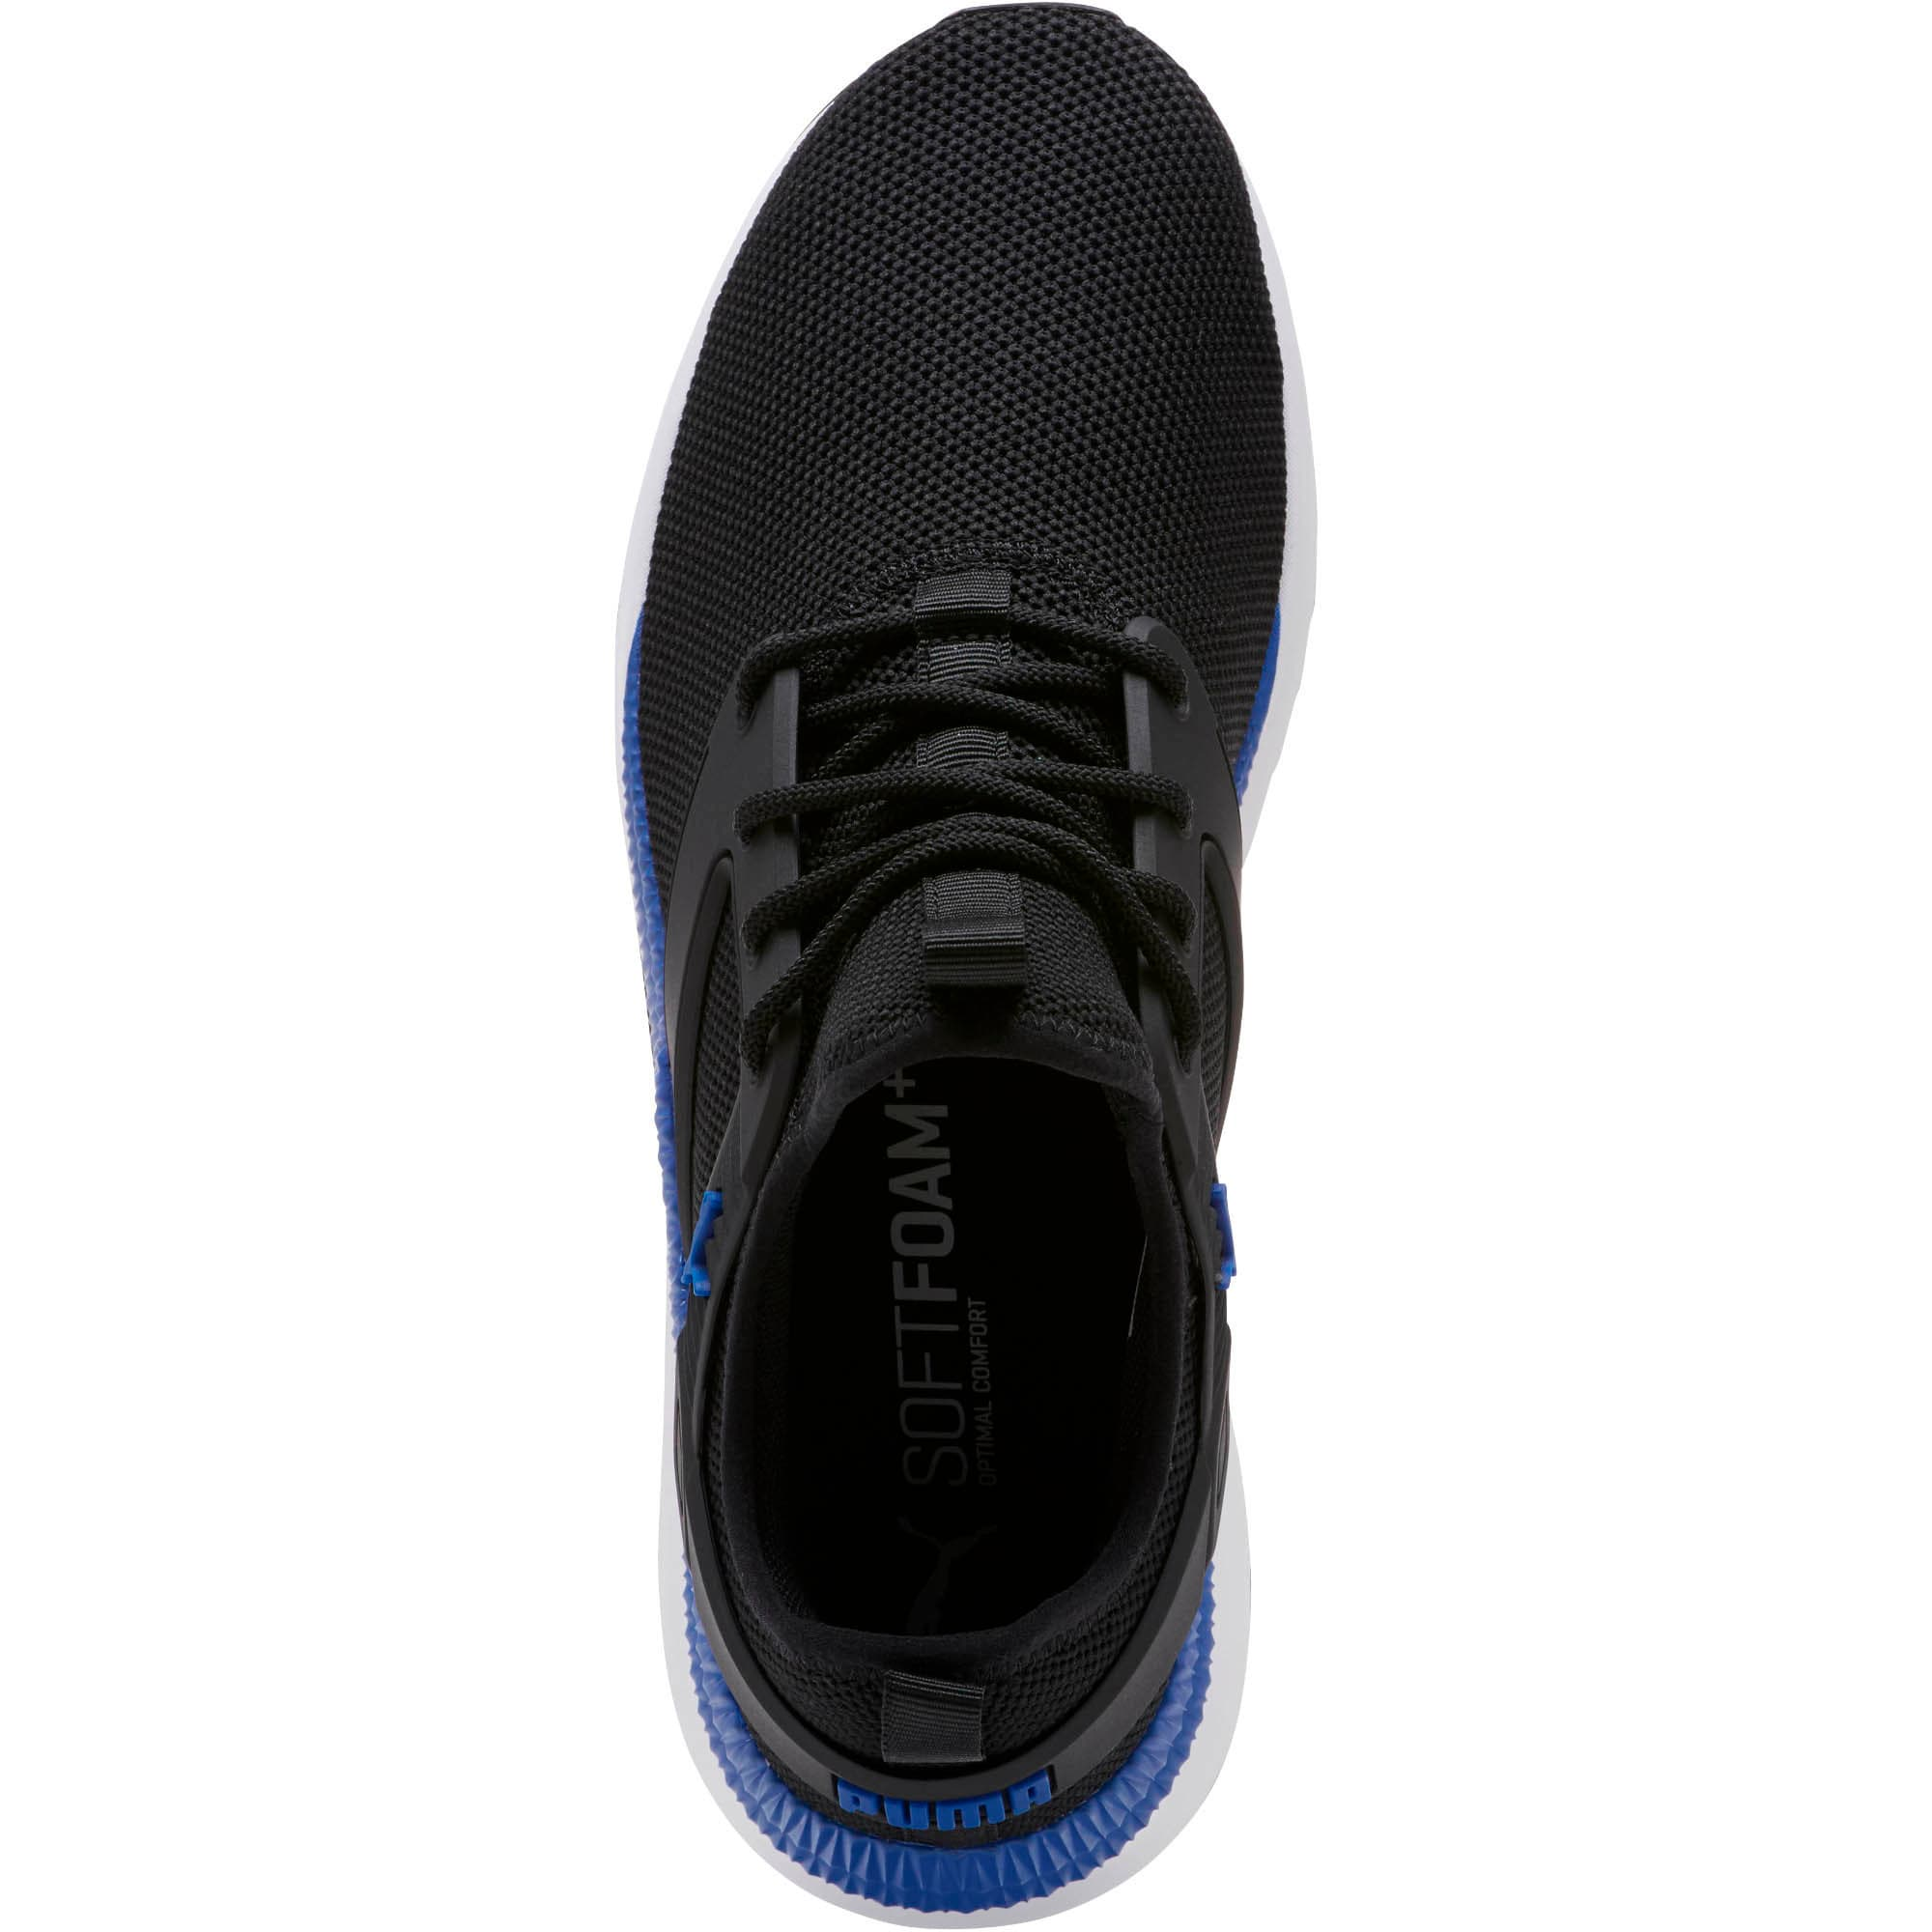 Thumbnail 4 of Pacer Next Excel Shoes, Puma Black-Surf The Web, medium-IND